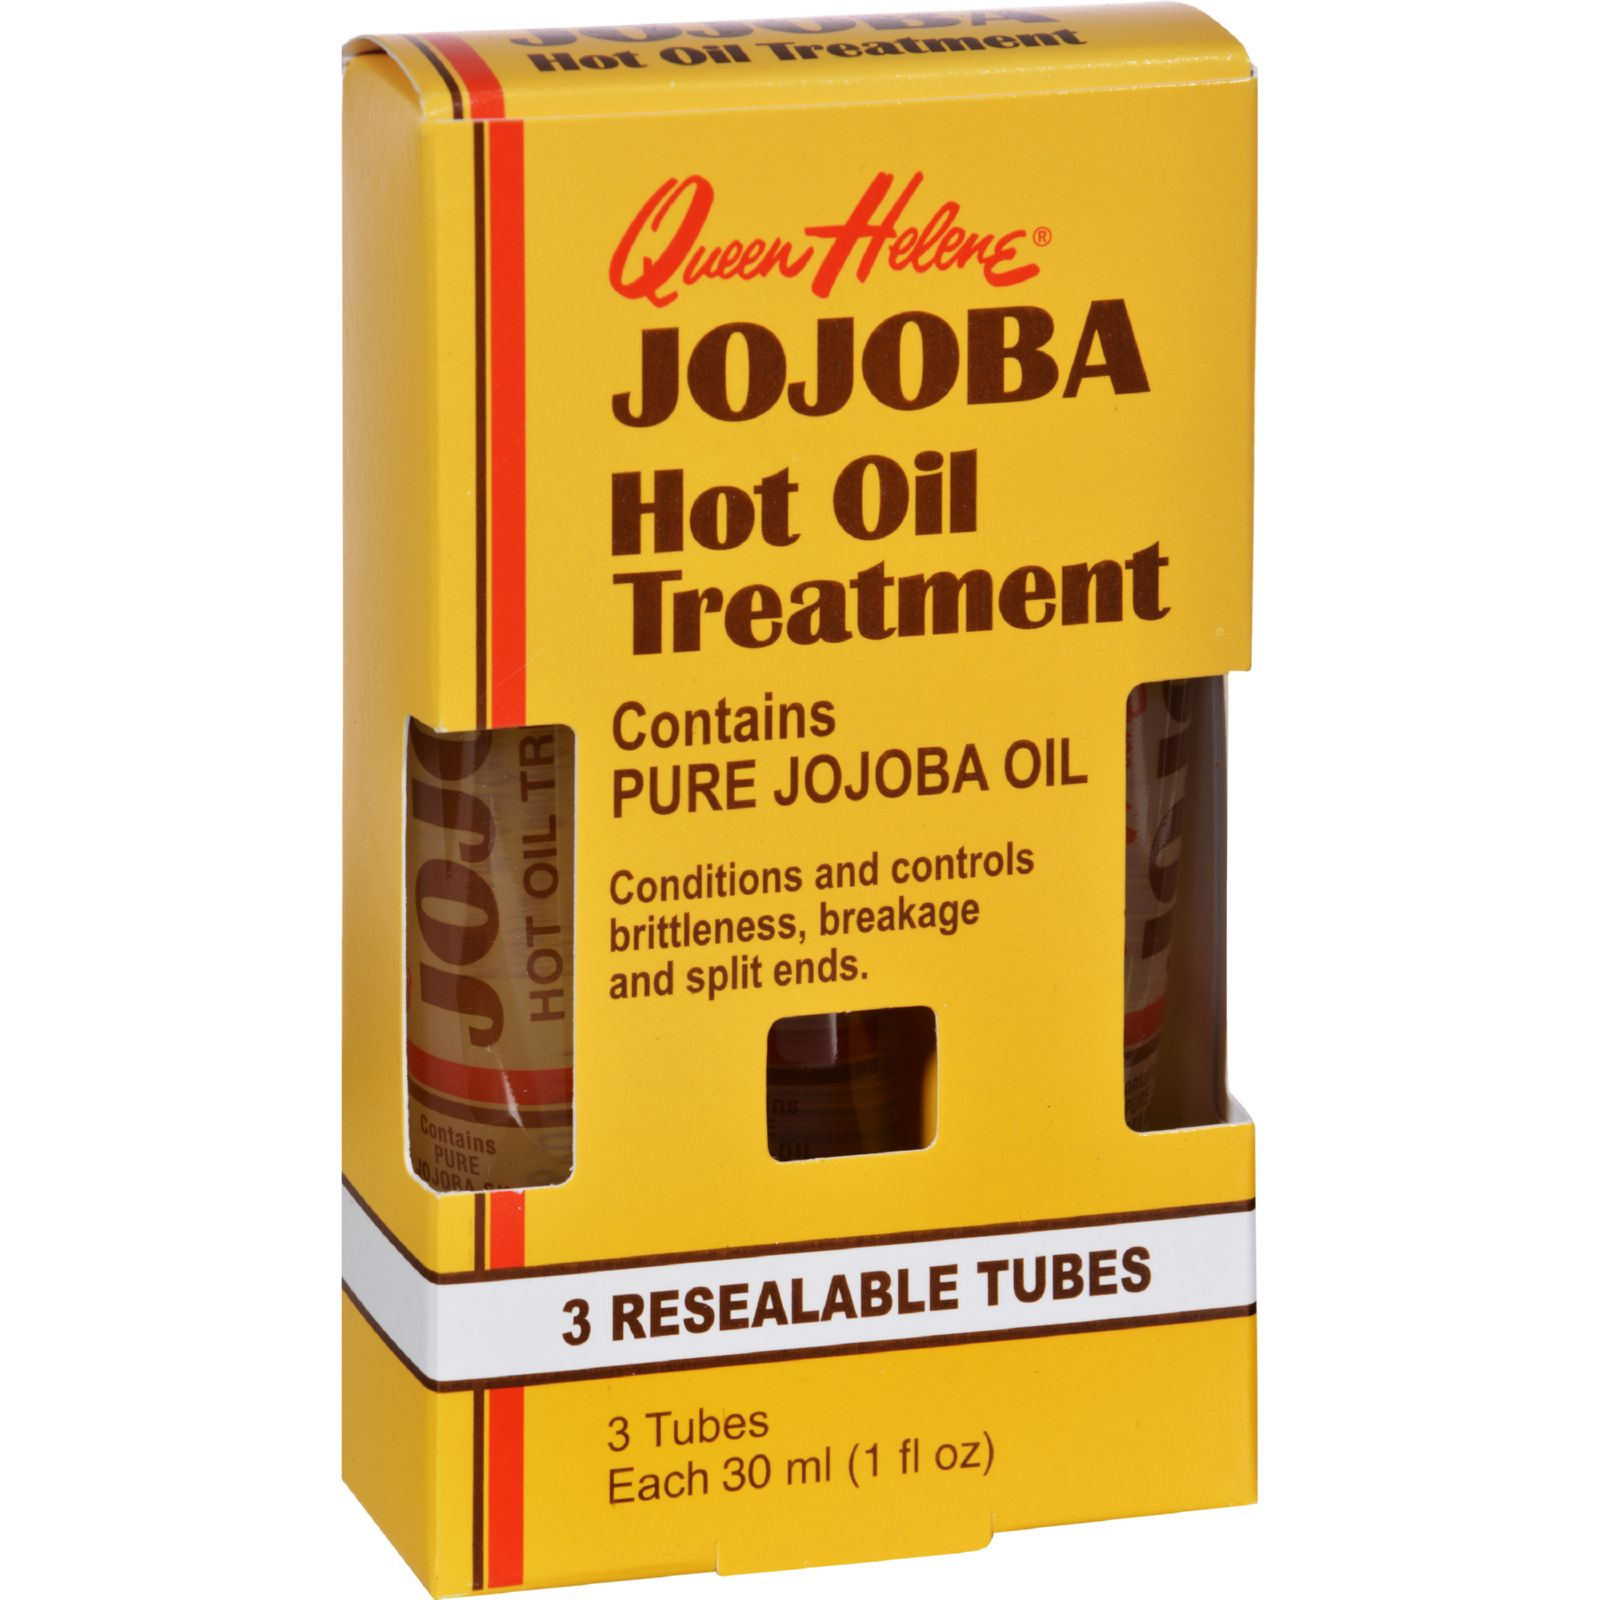 Queen Helene Jojoba Hot Oil Treatment - 1 Fl Oz